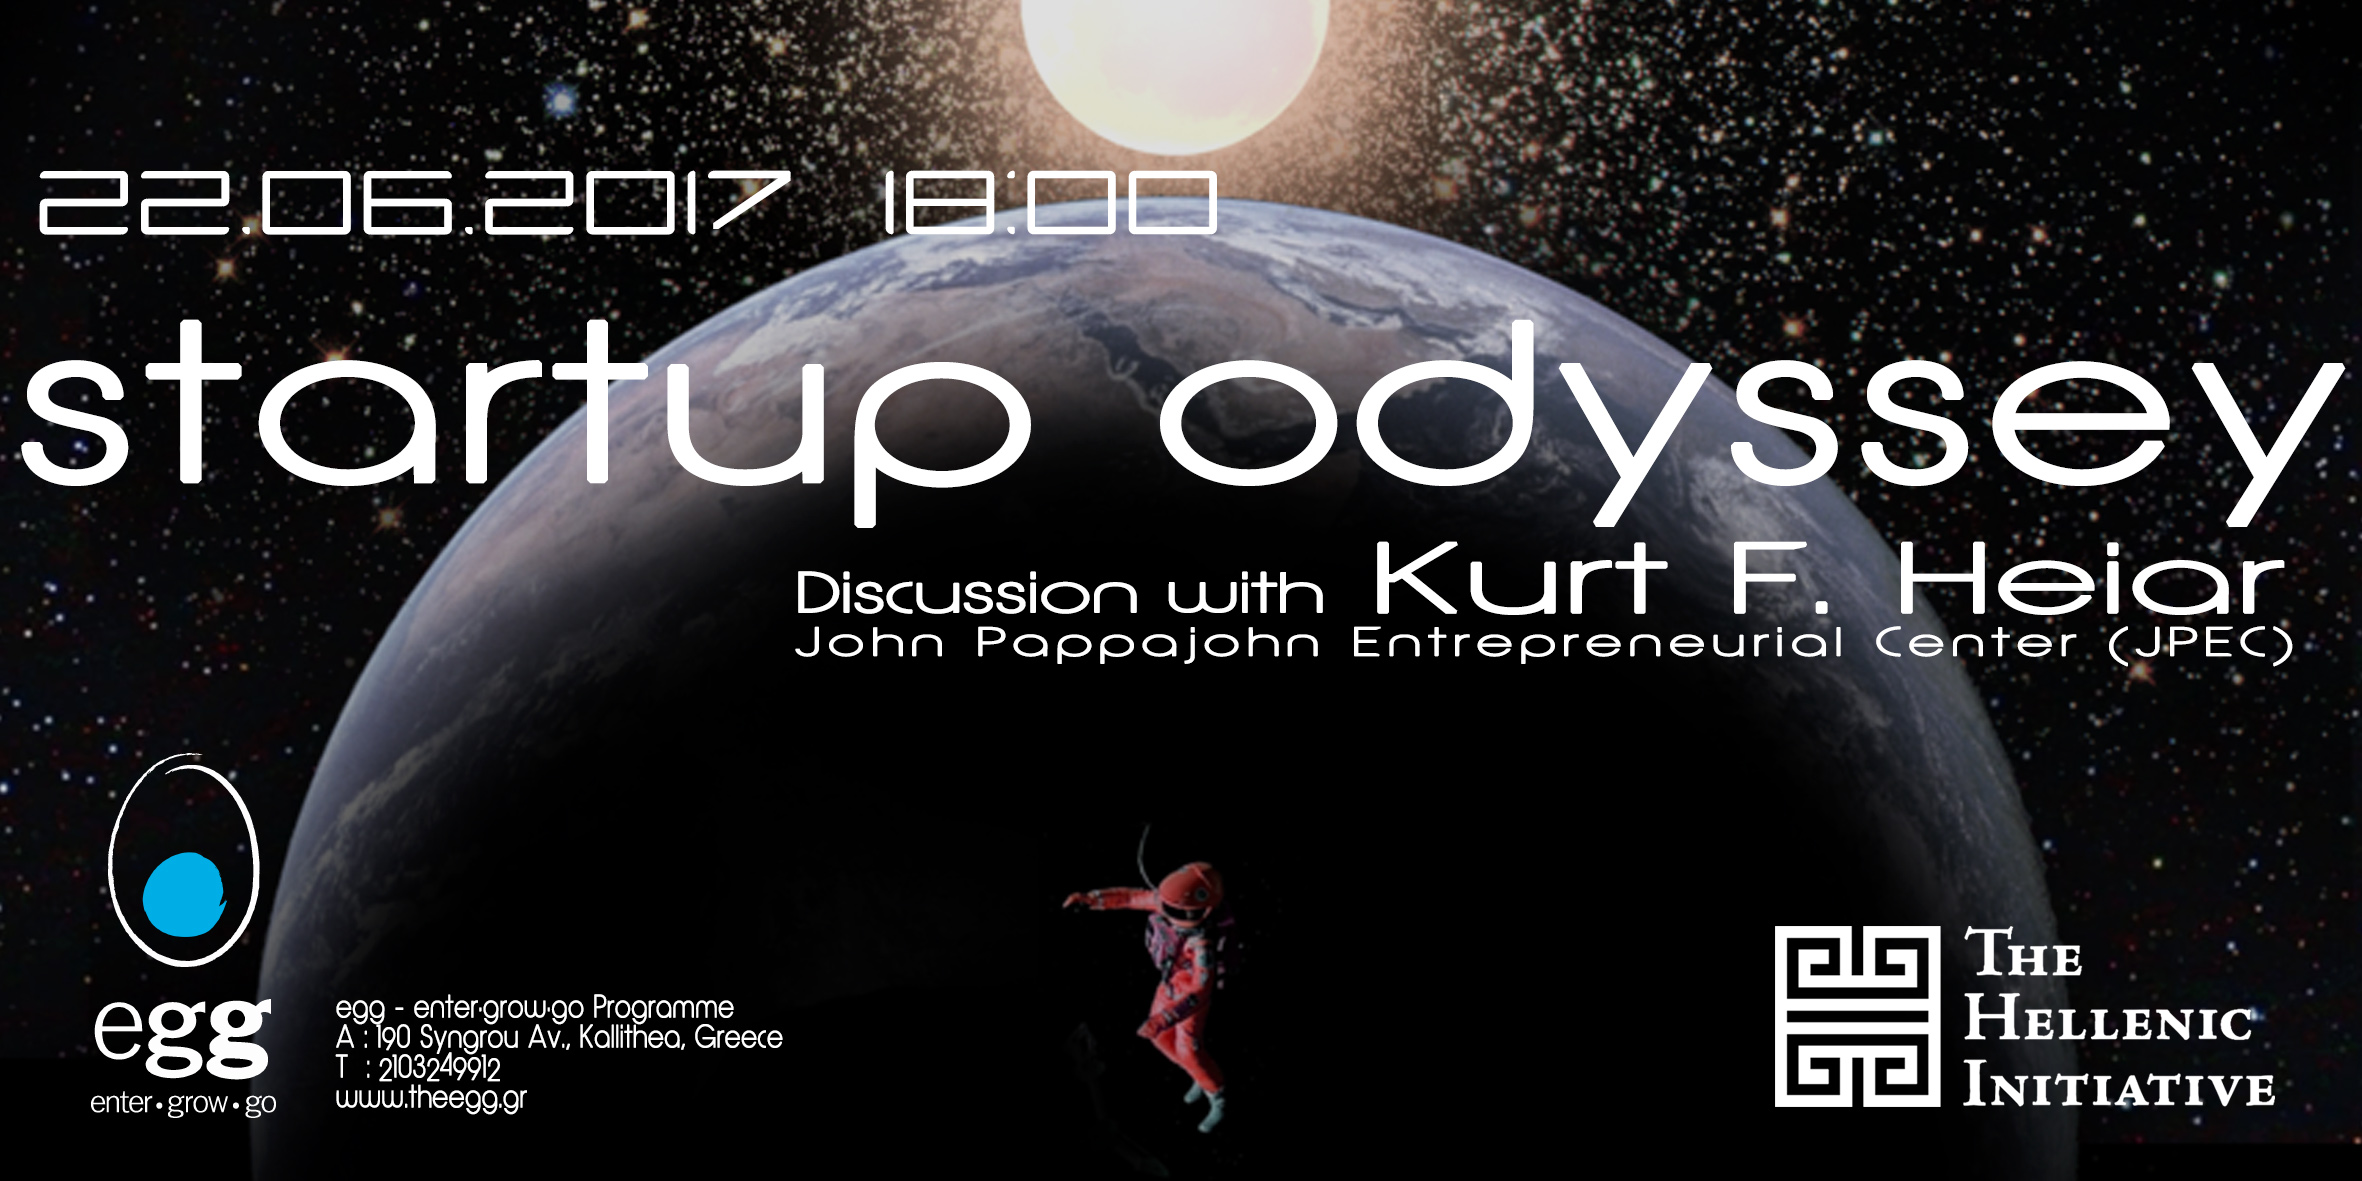 Startup Odyssey, discussion with Kurt F. Heiar